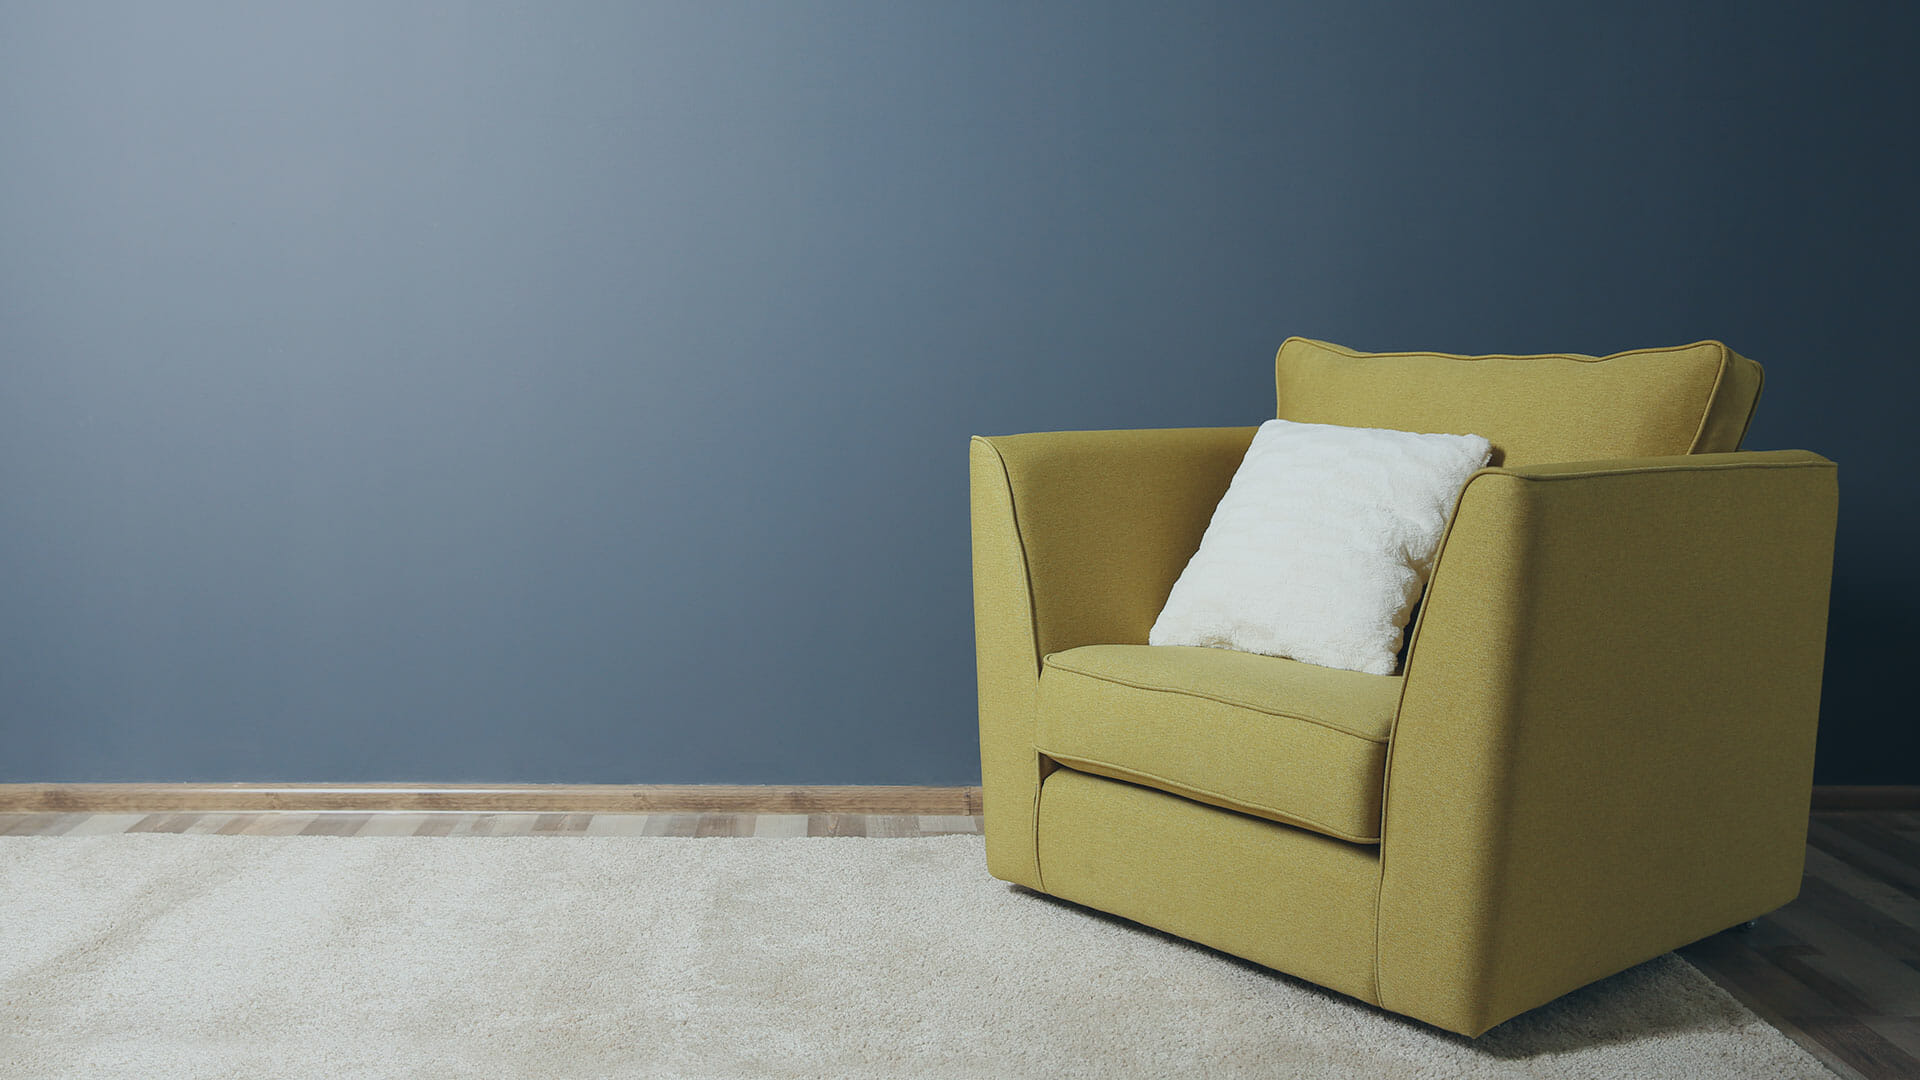 A yellow armchair in front of a dark blue wall.